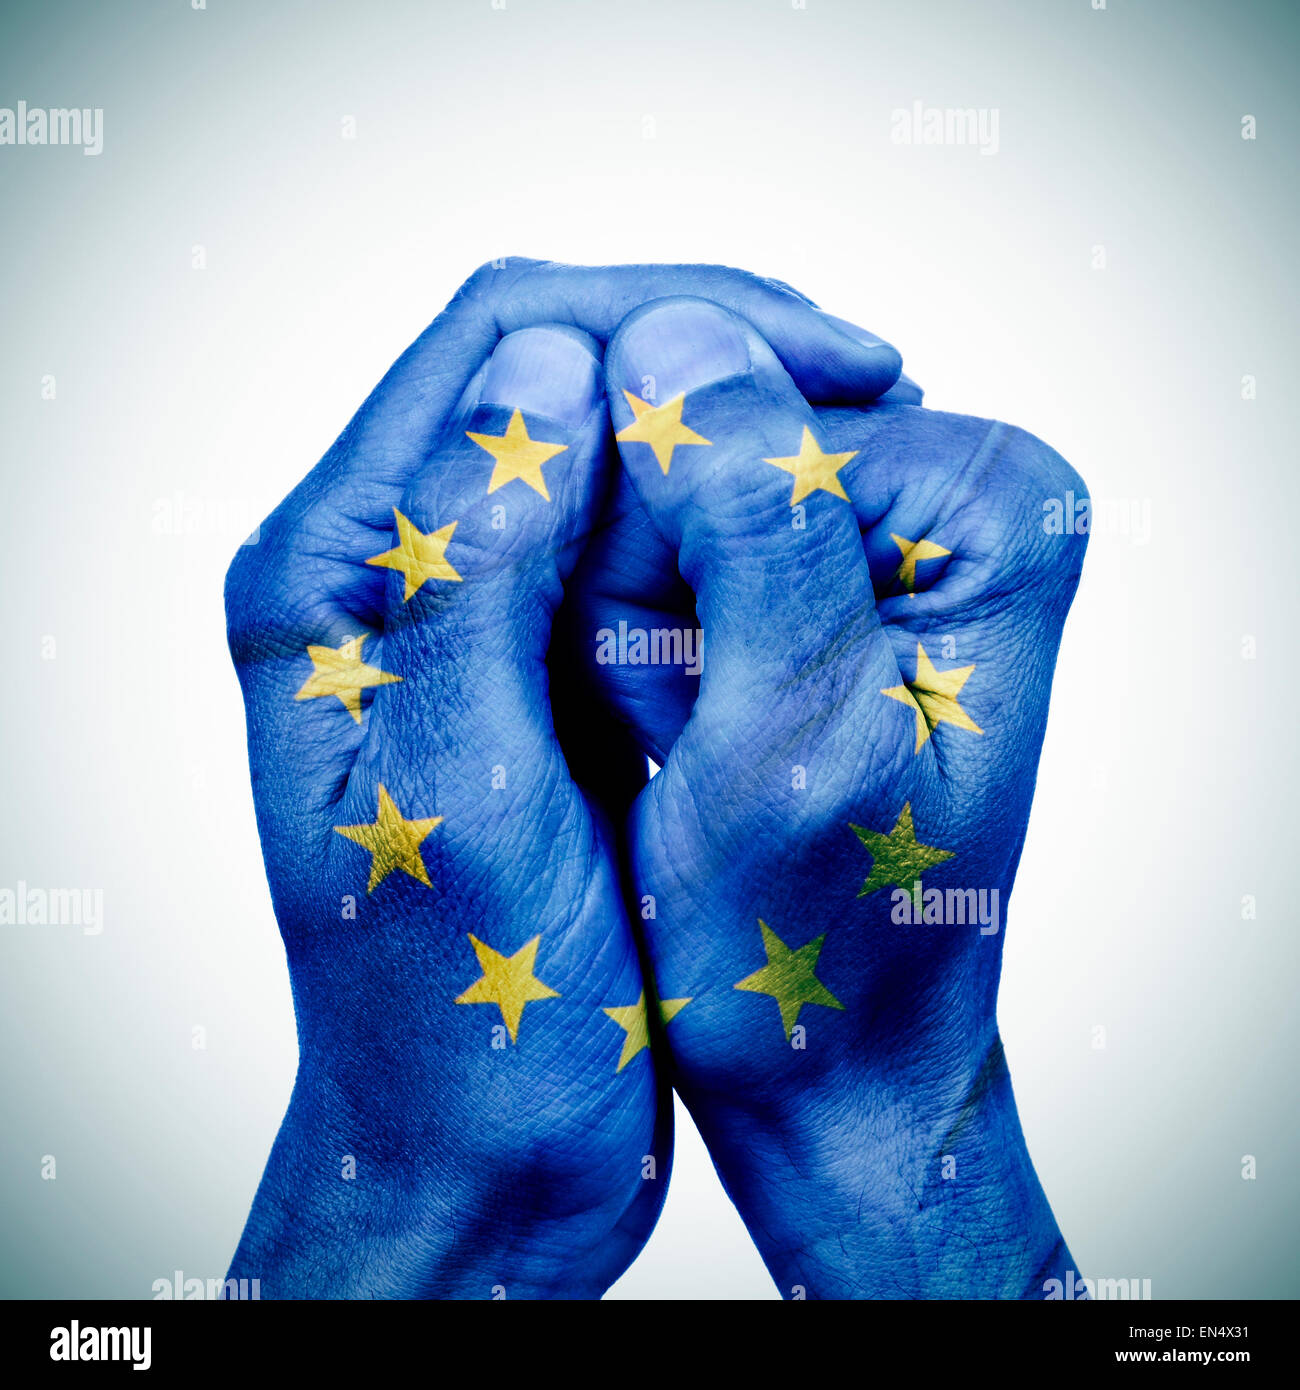 the clasped hands of a young man patterned with the flag of the european union - Stock Image